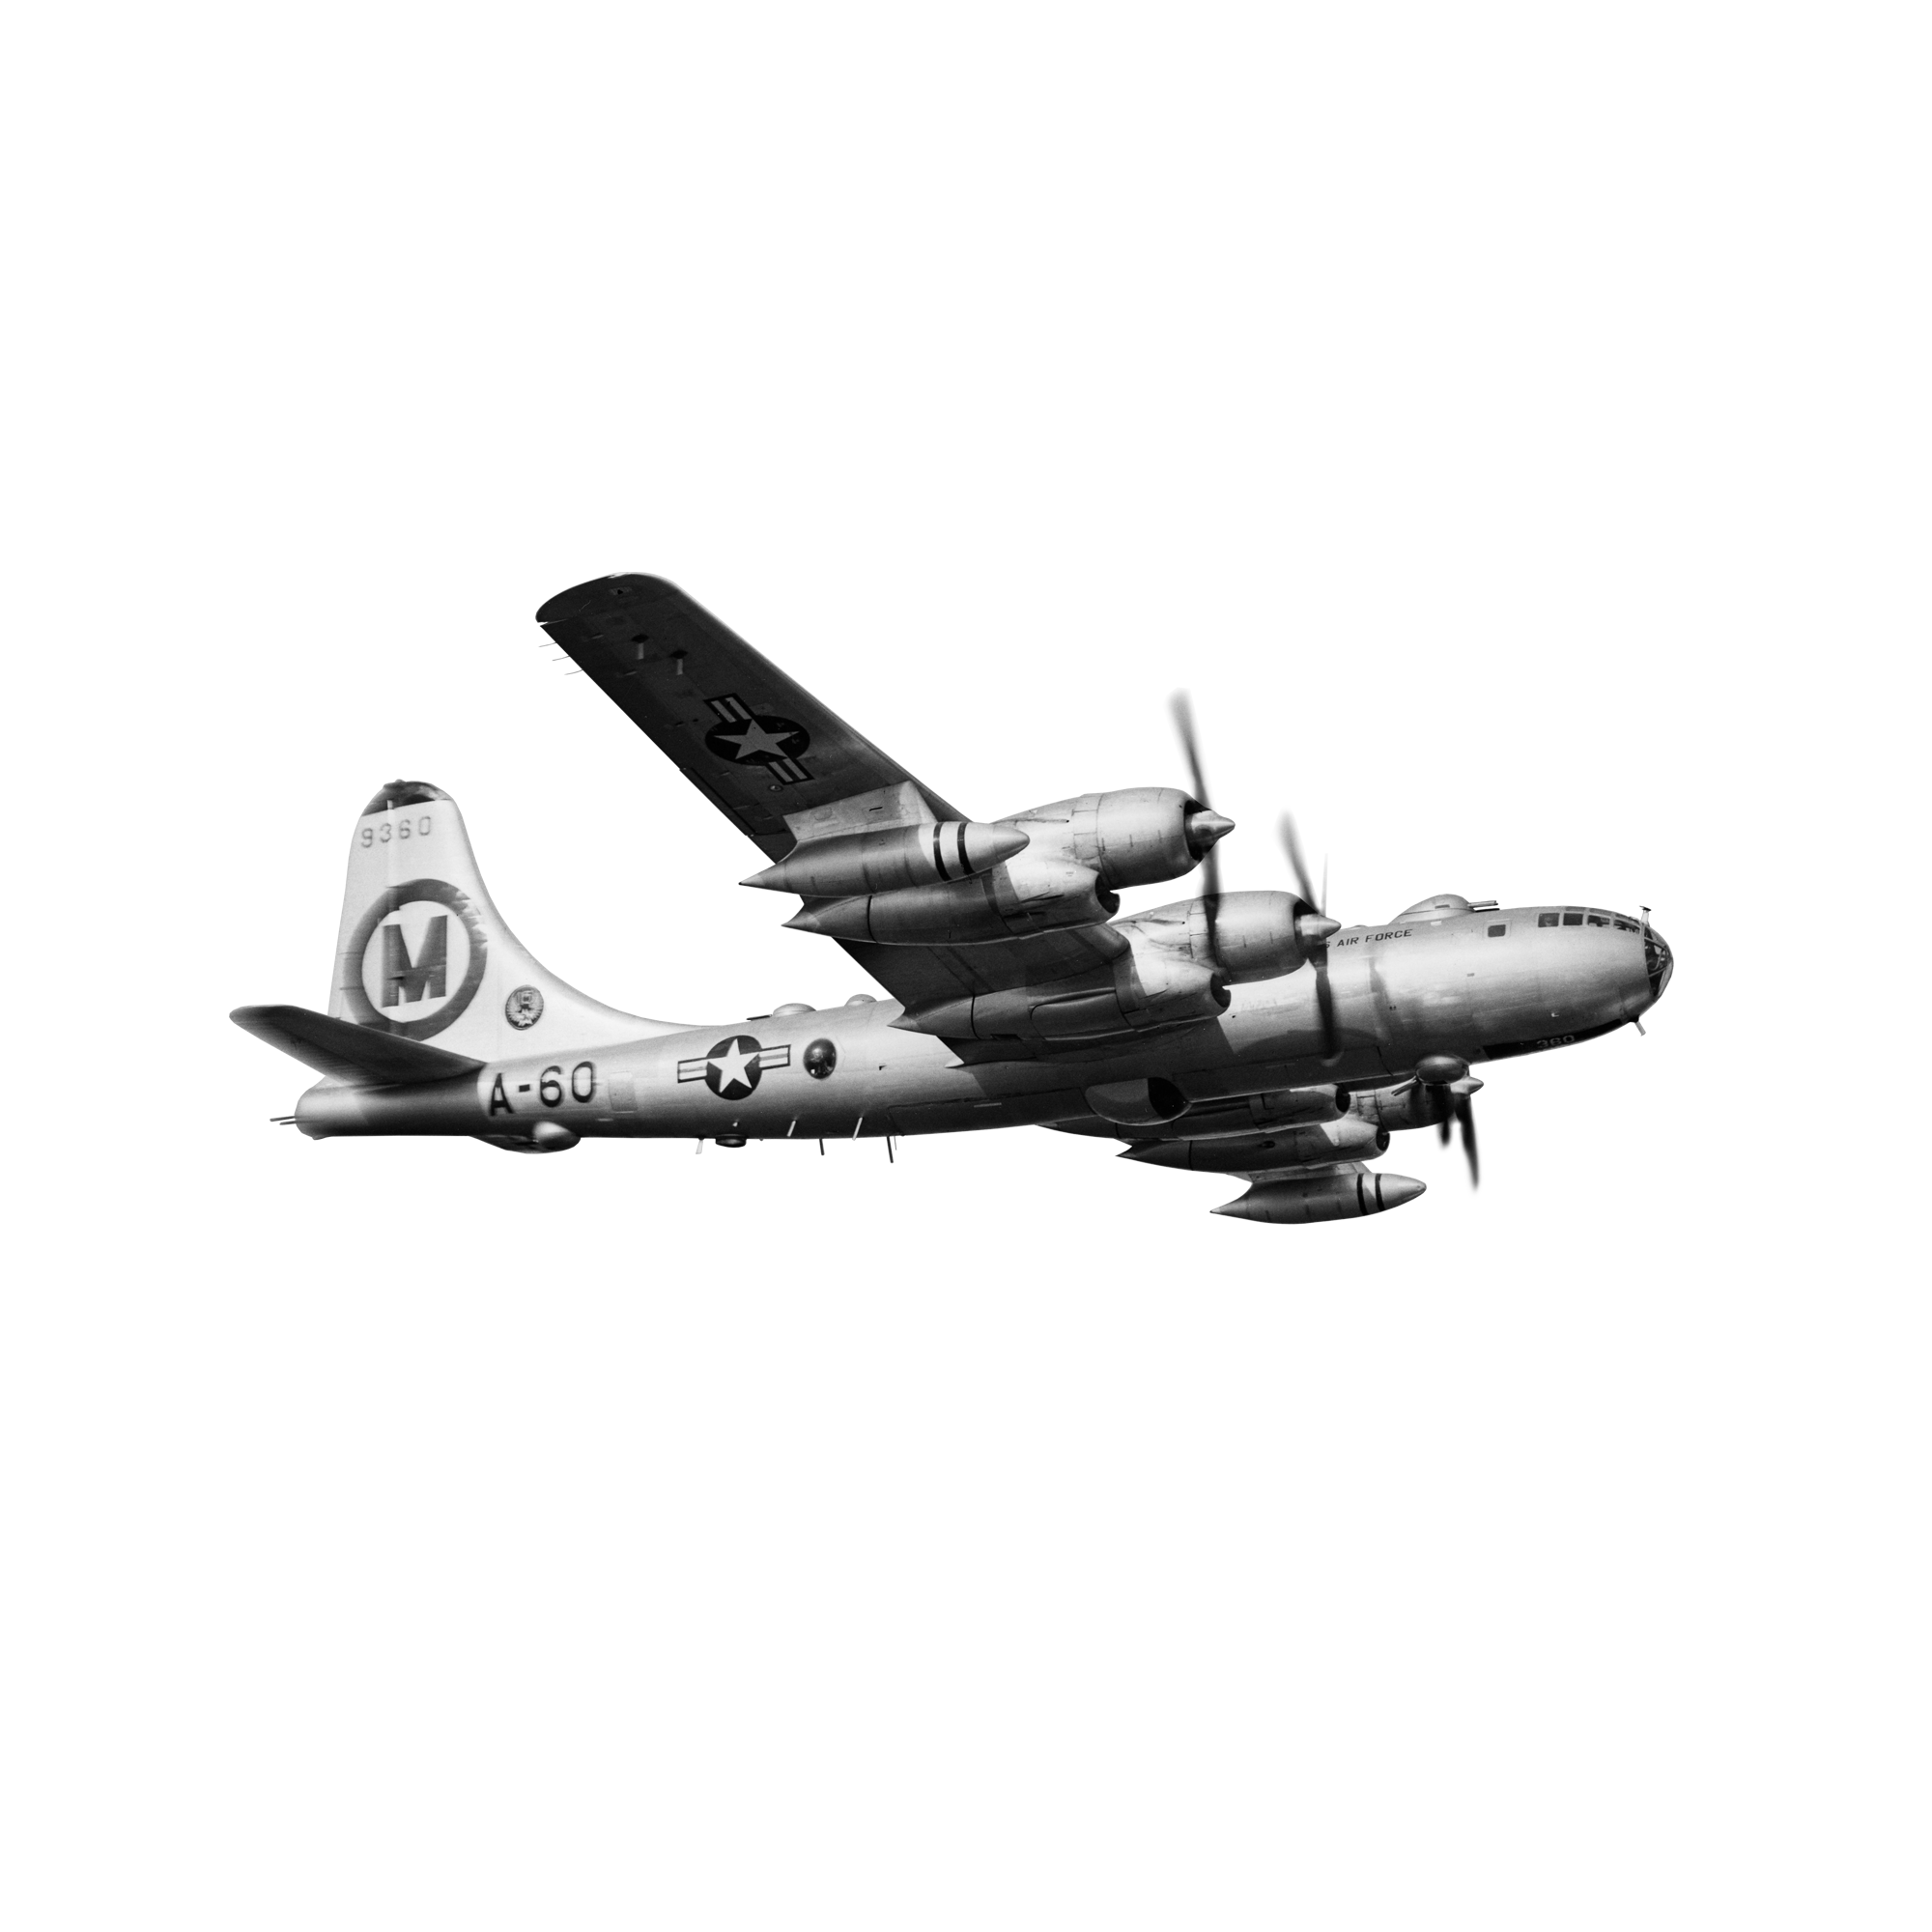 graphic free Bomber plane png